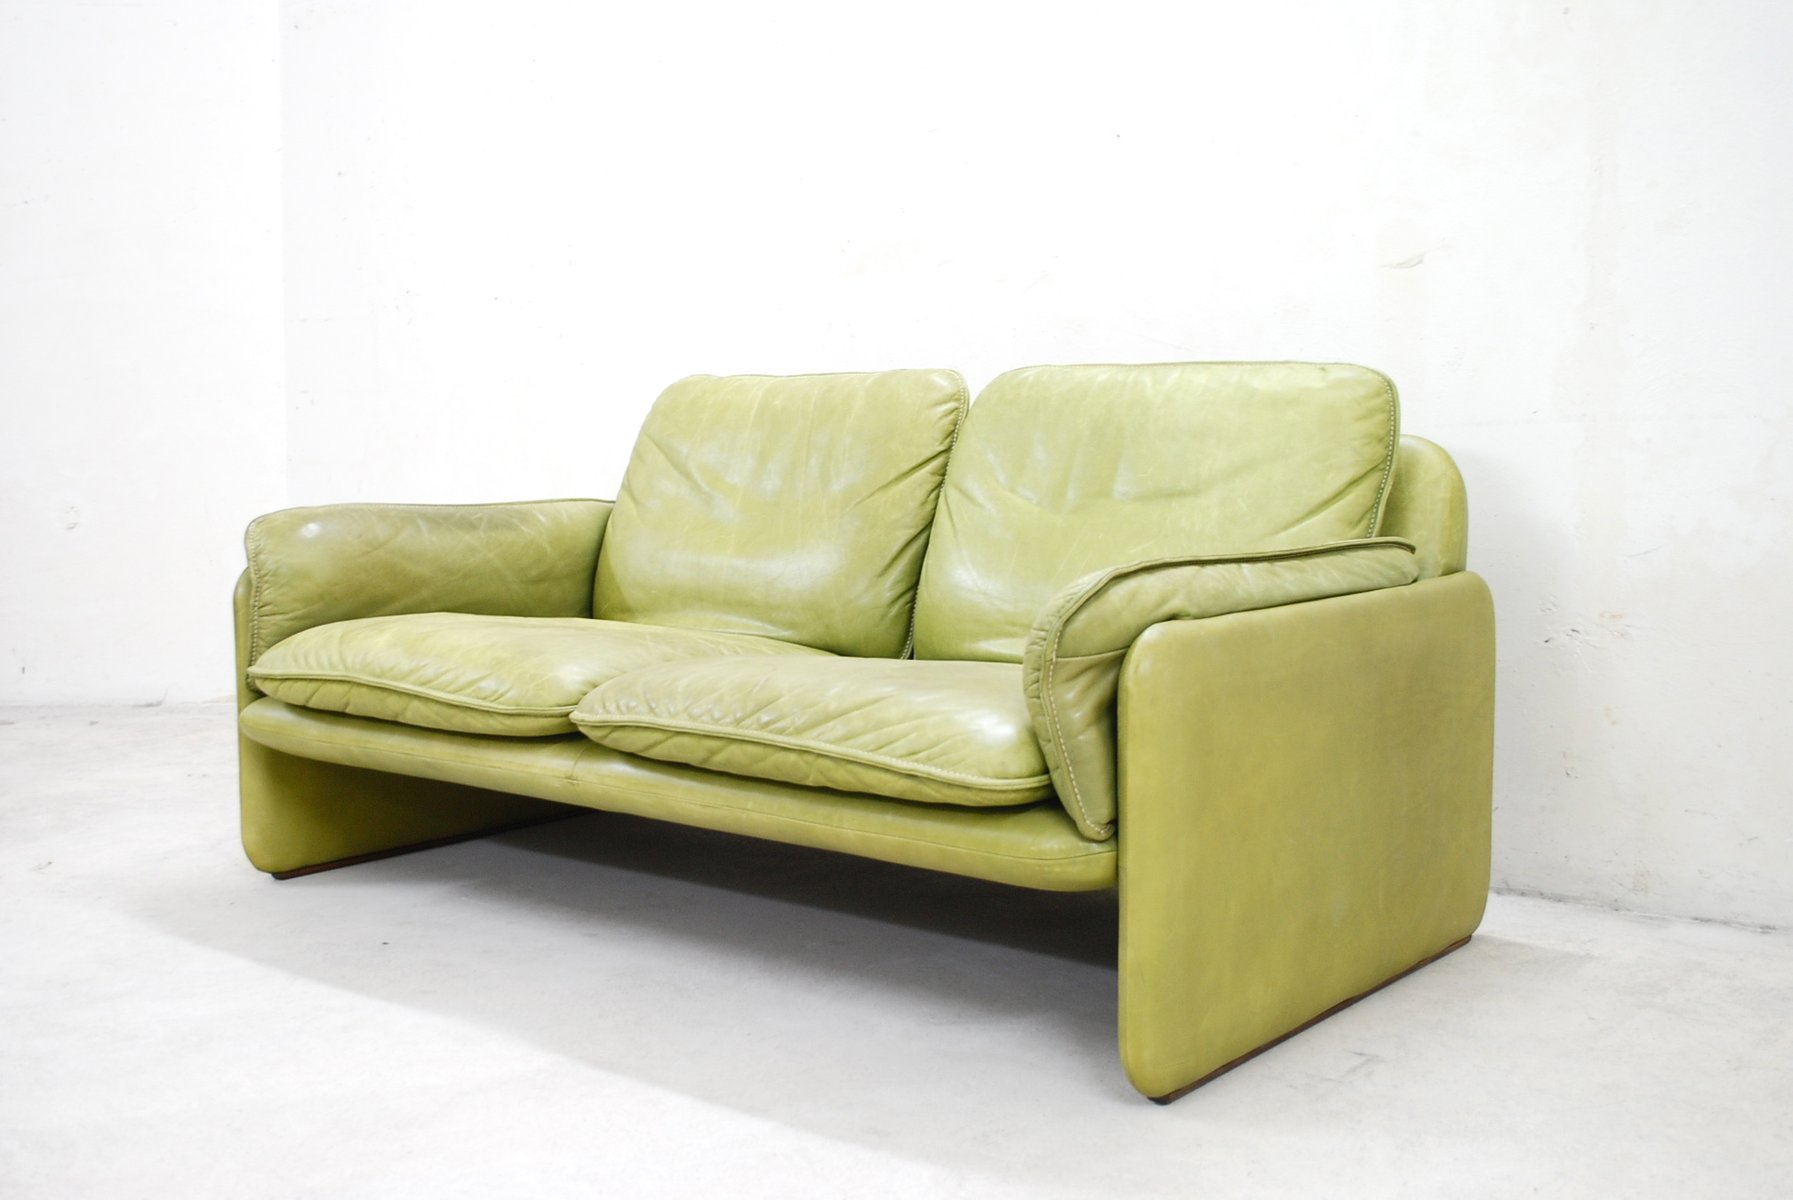 Vintage Ds 61 Lime Green Leather Sofa By De Sede For Sale At Pamono